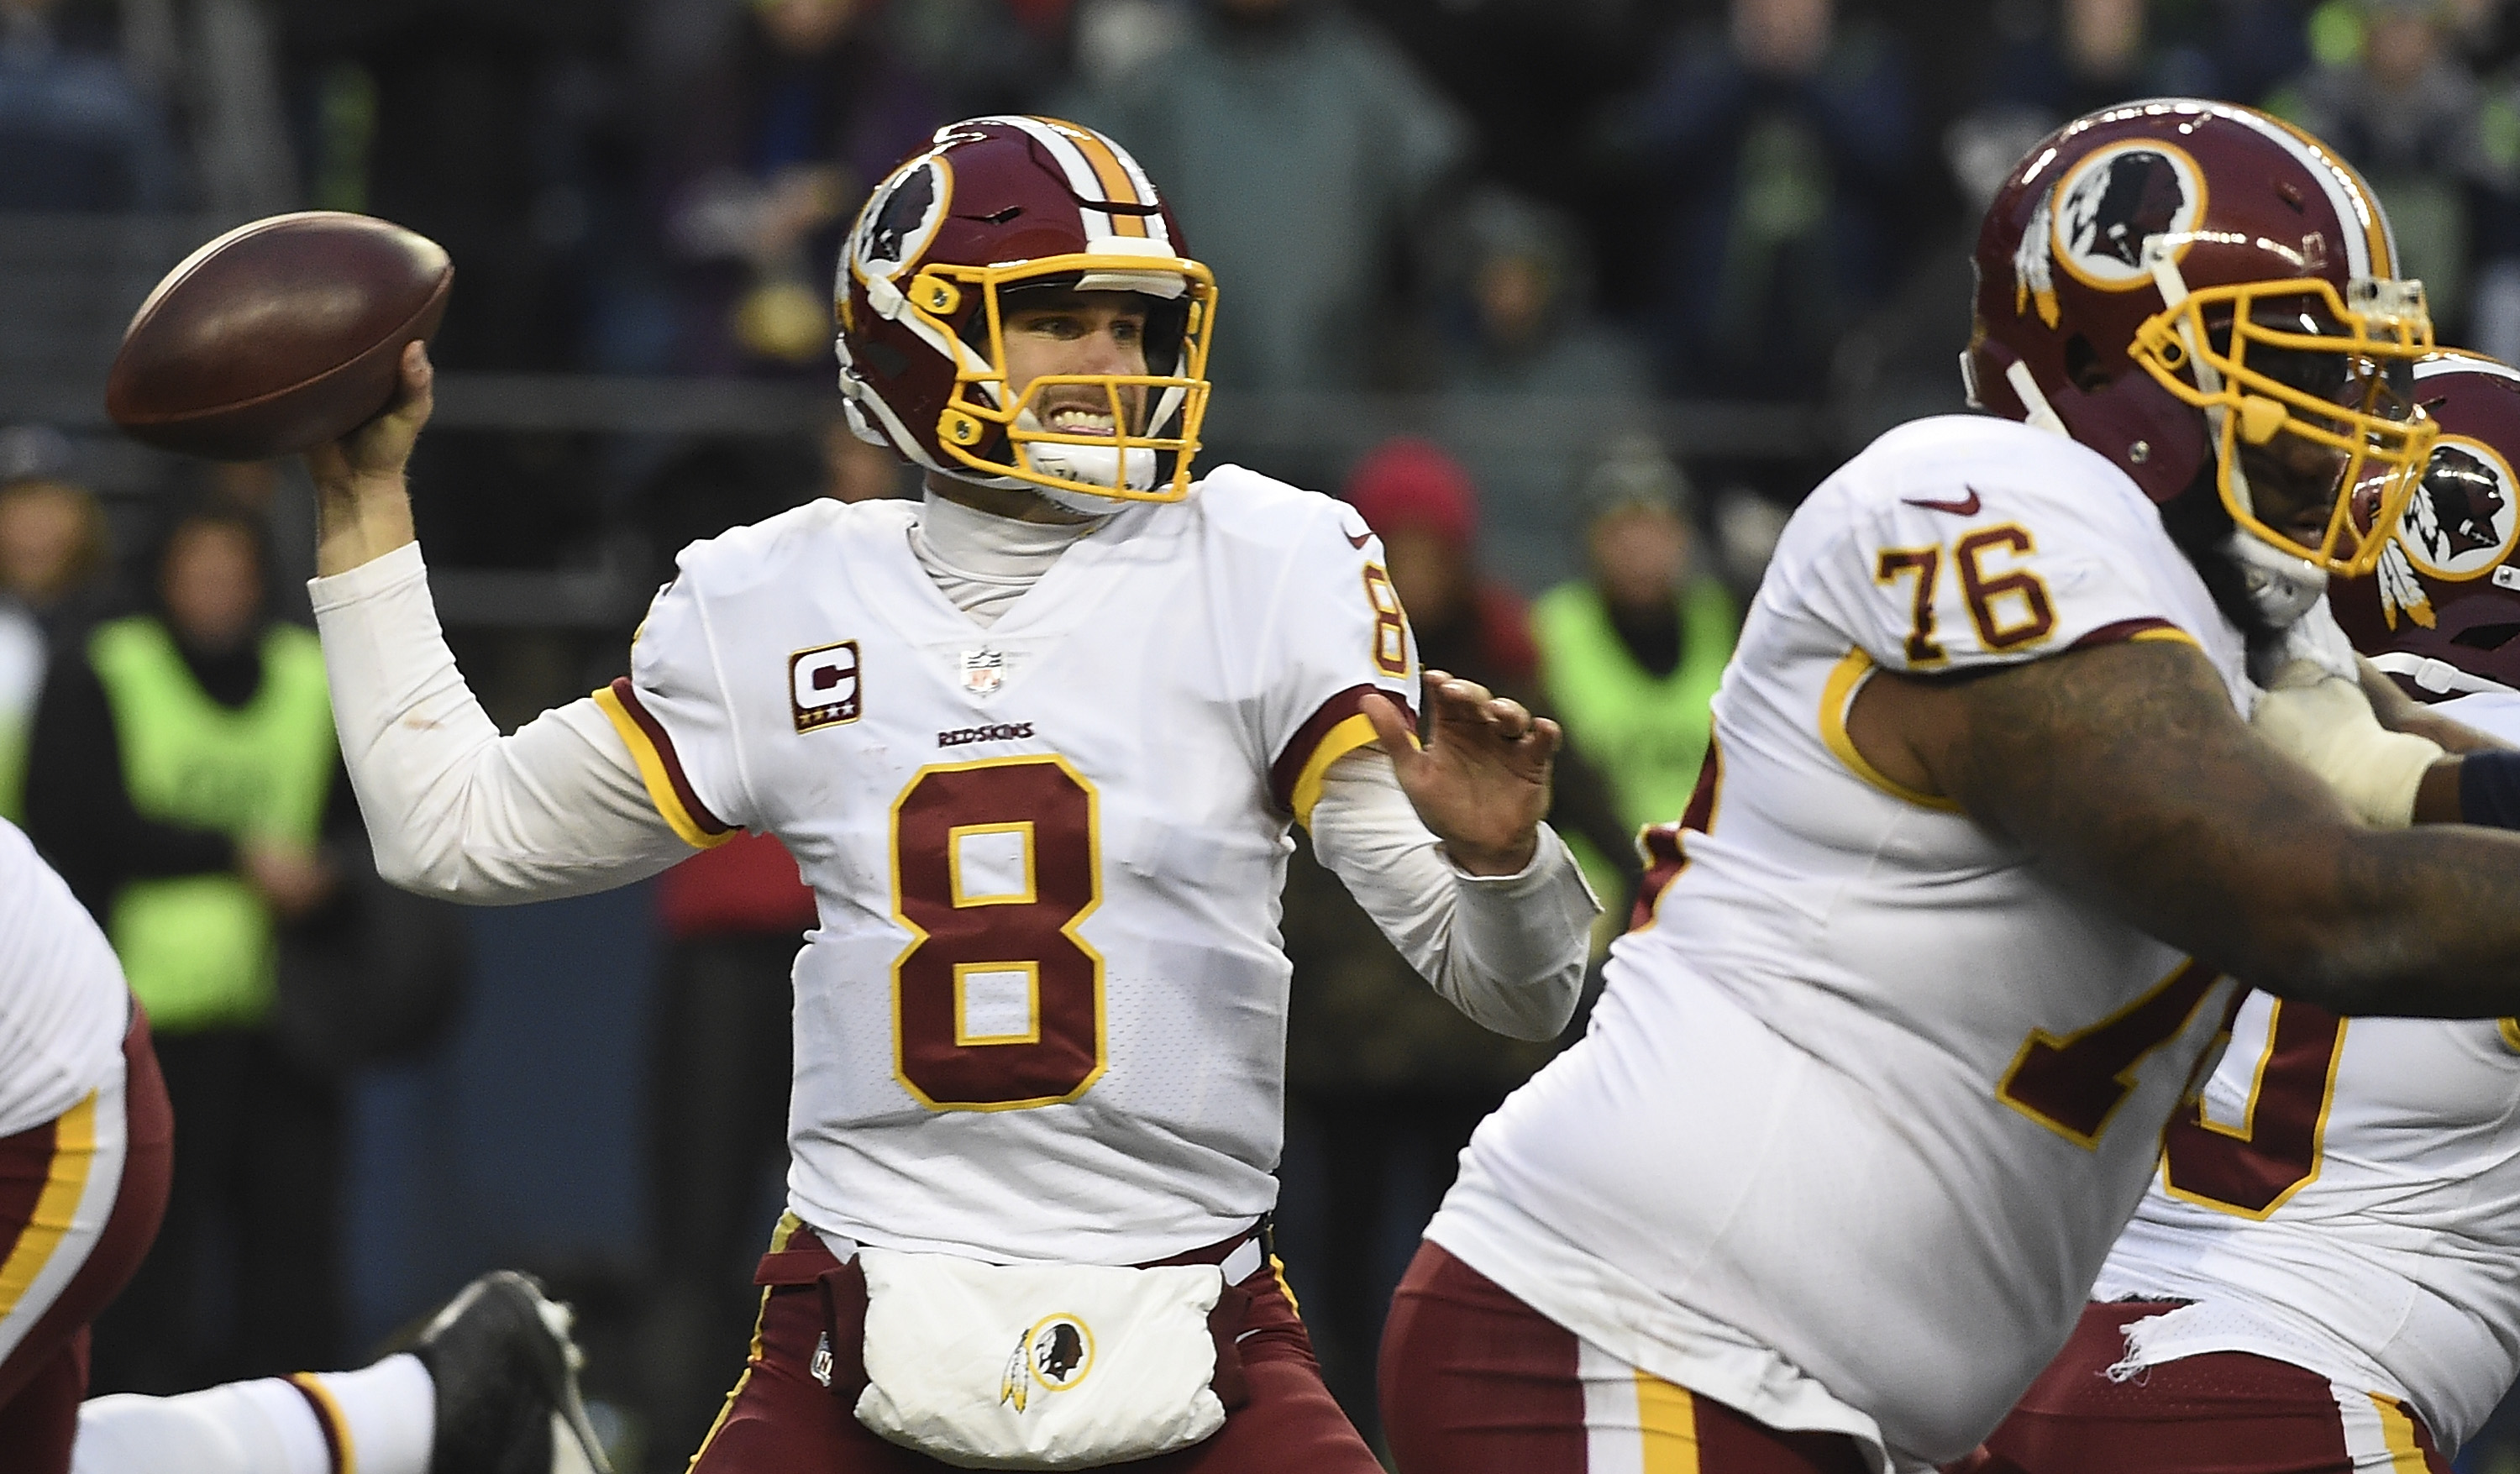 Jets fear Kirk Cousins has already decided on Vikings